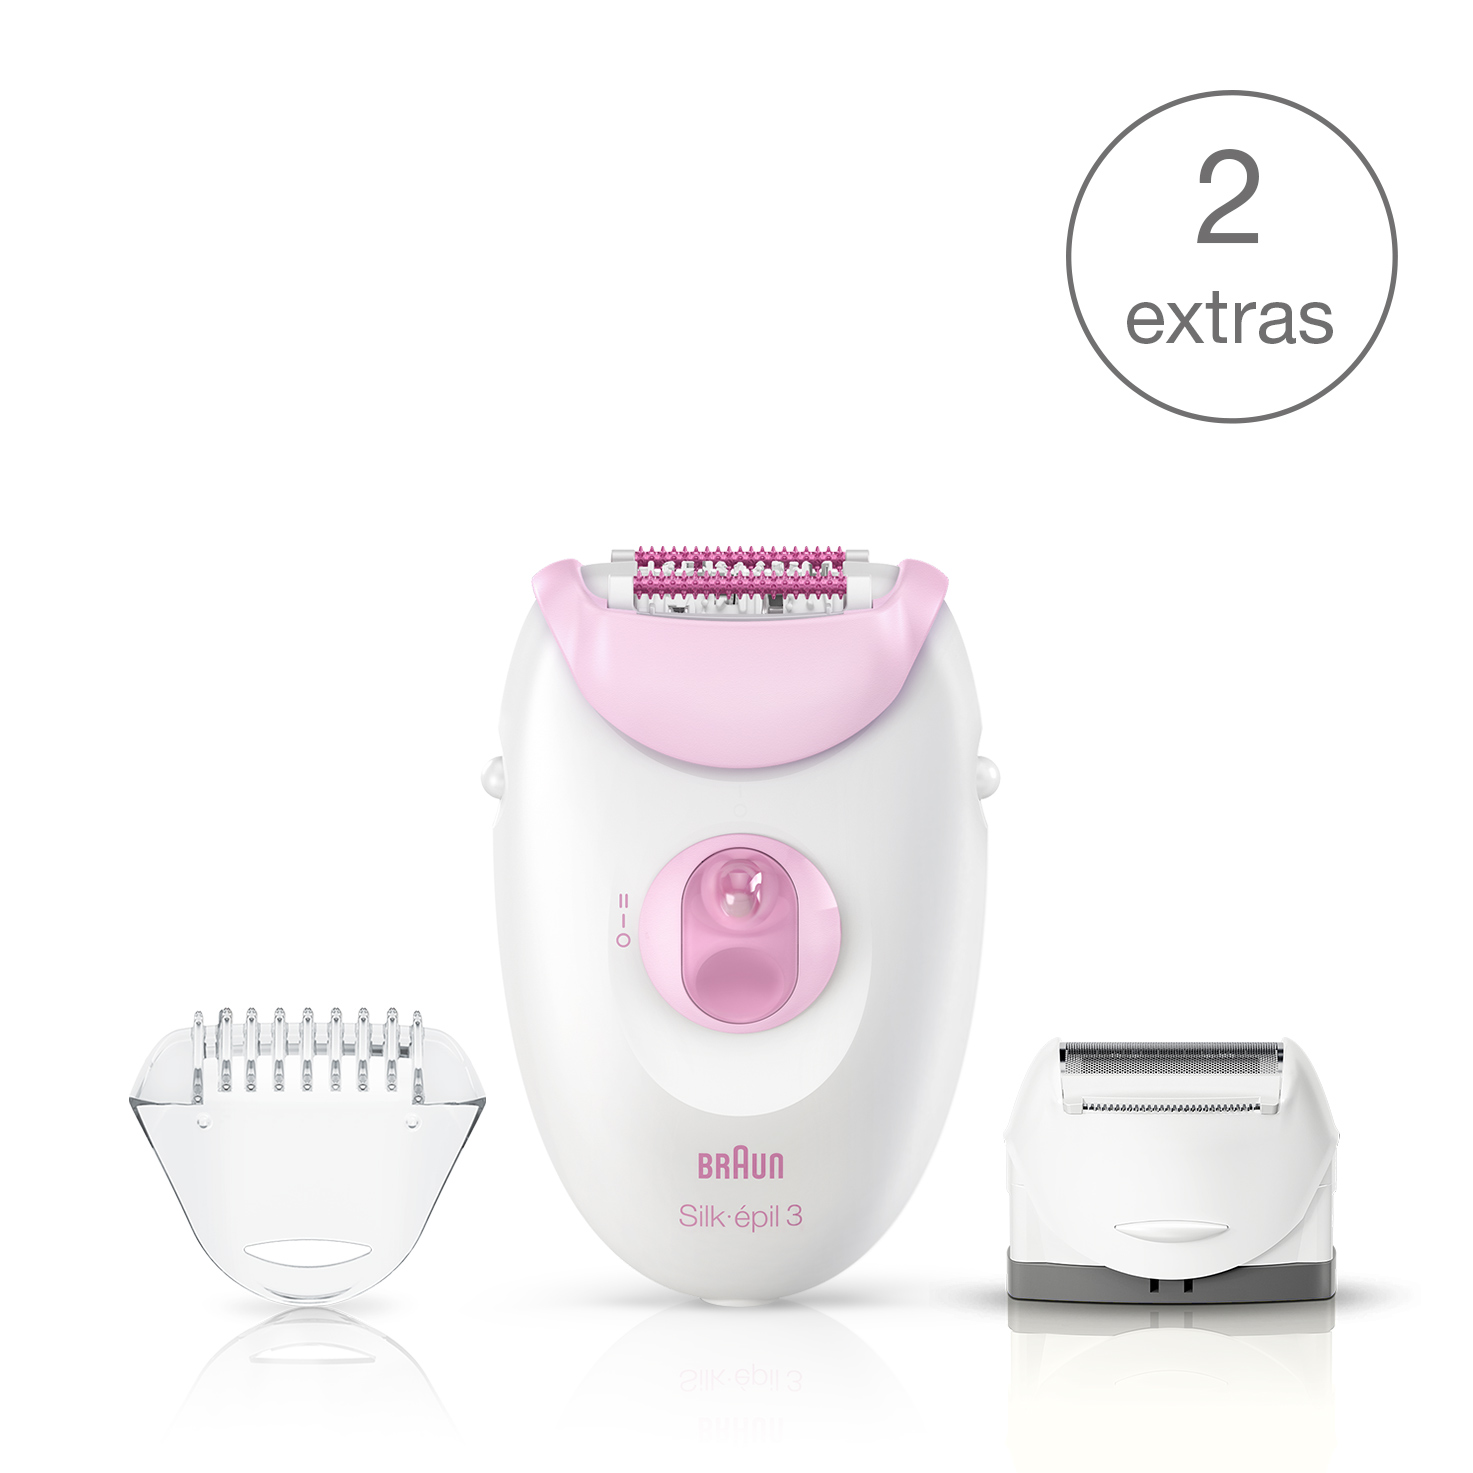 Silk-épil 3 - 3270 Leg and Body Epilator and Shaver